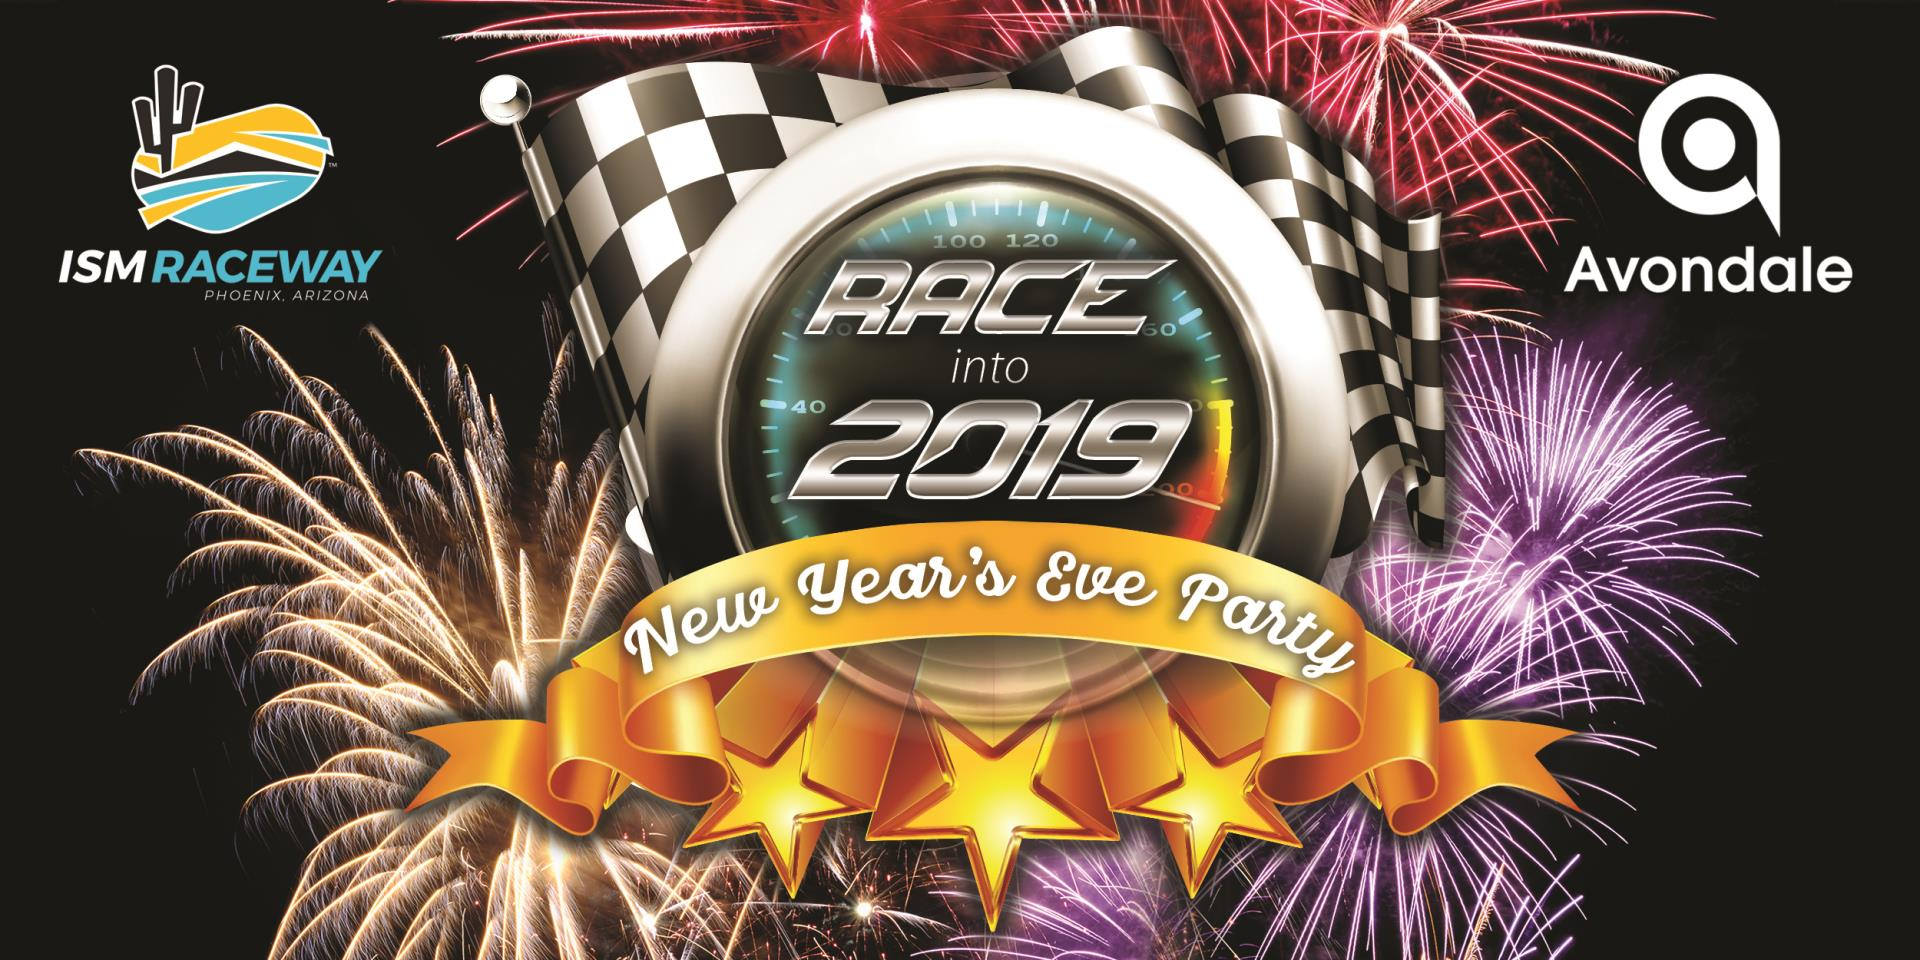 Race into 2019 in Avondale at ISM Raceway; New Year's Eve Event to feature Fireworks and More